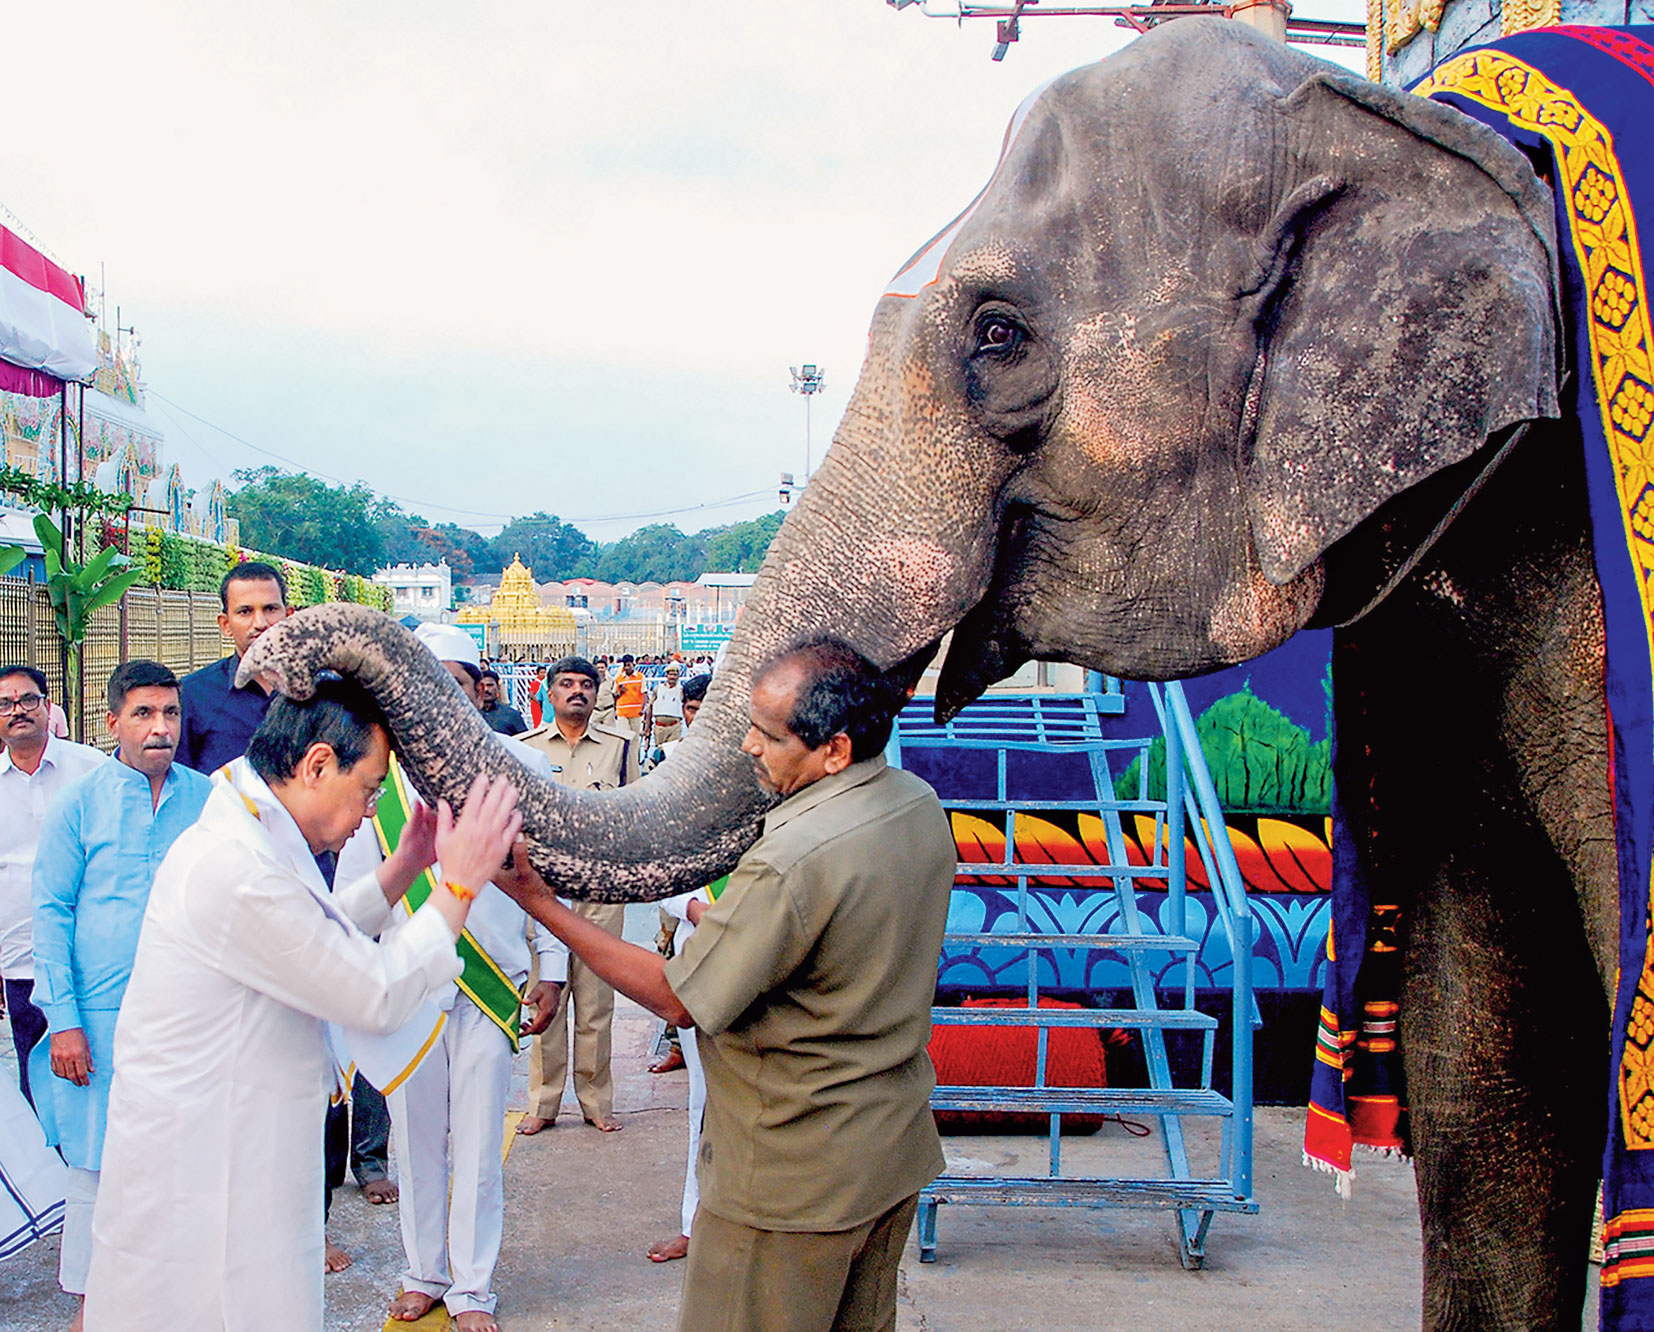 Outgoing Chief Justice of India Ranjan Gogoi, who headed the bench that delivered the Ayodhya verdict, seeks the blessings of an elephant at Tirupati temple on Saturday.